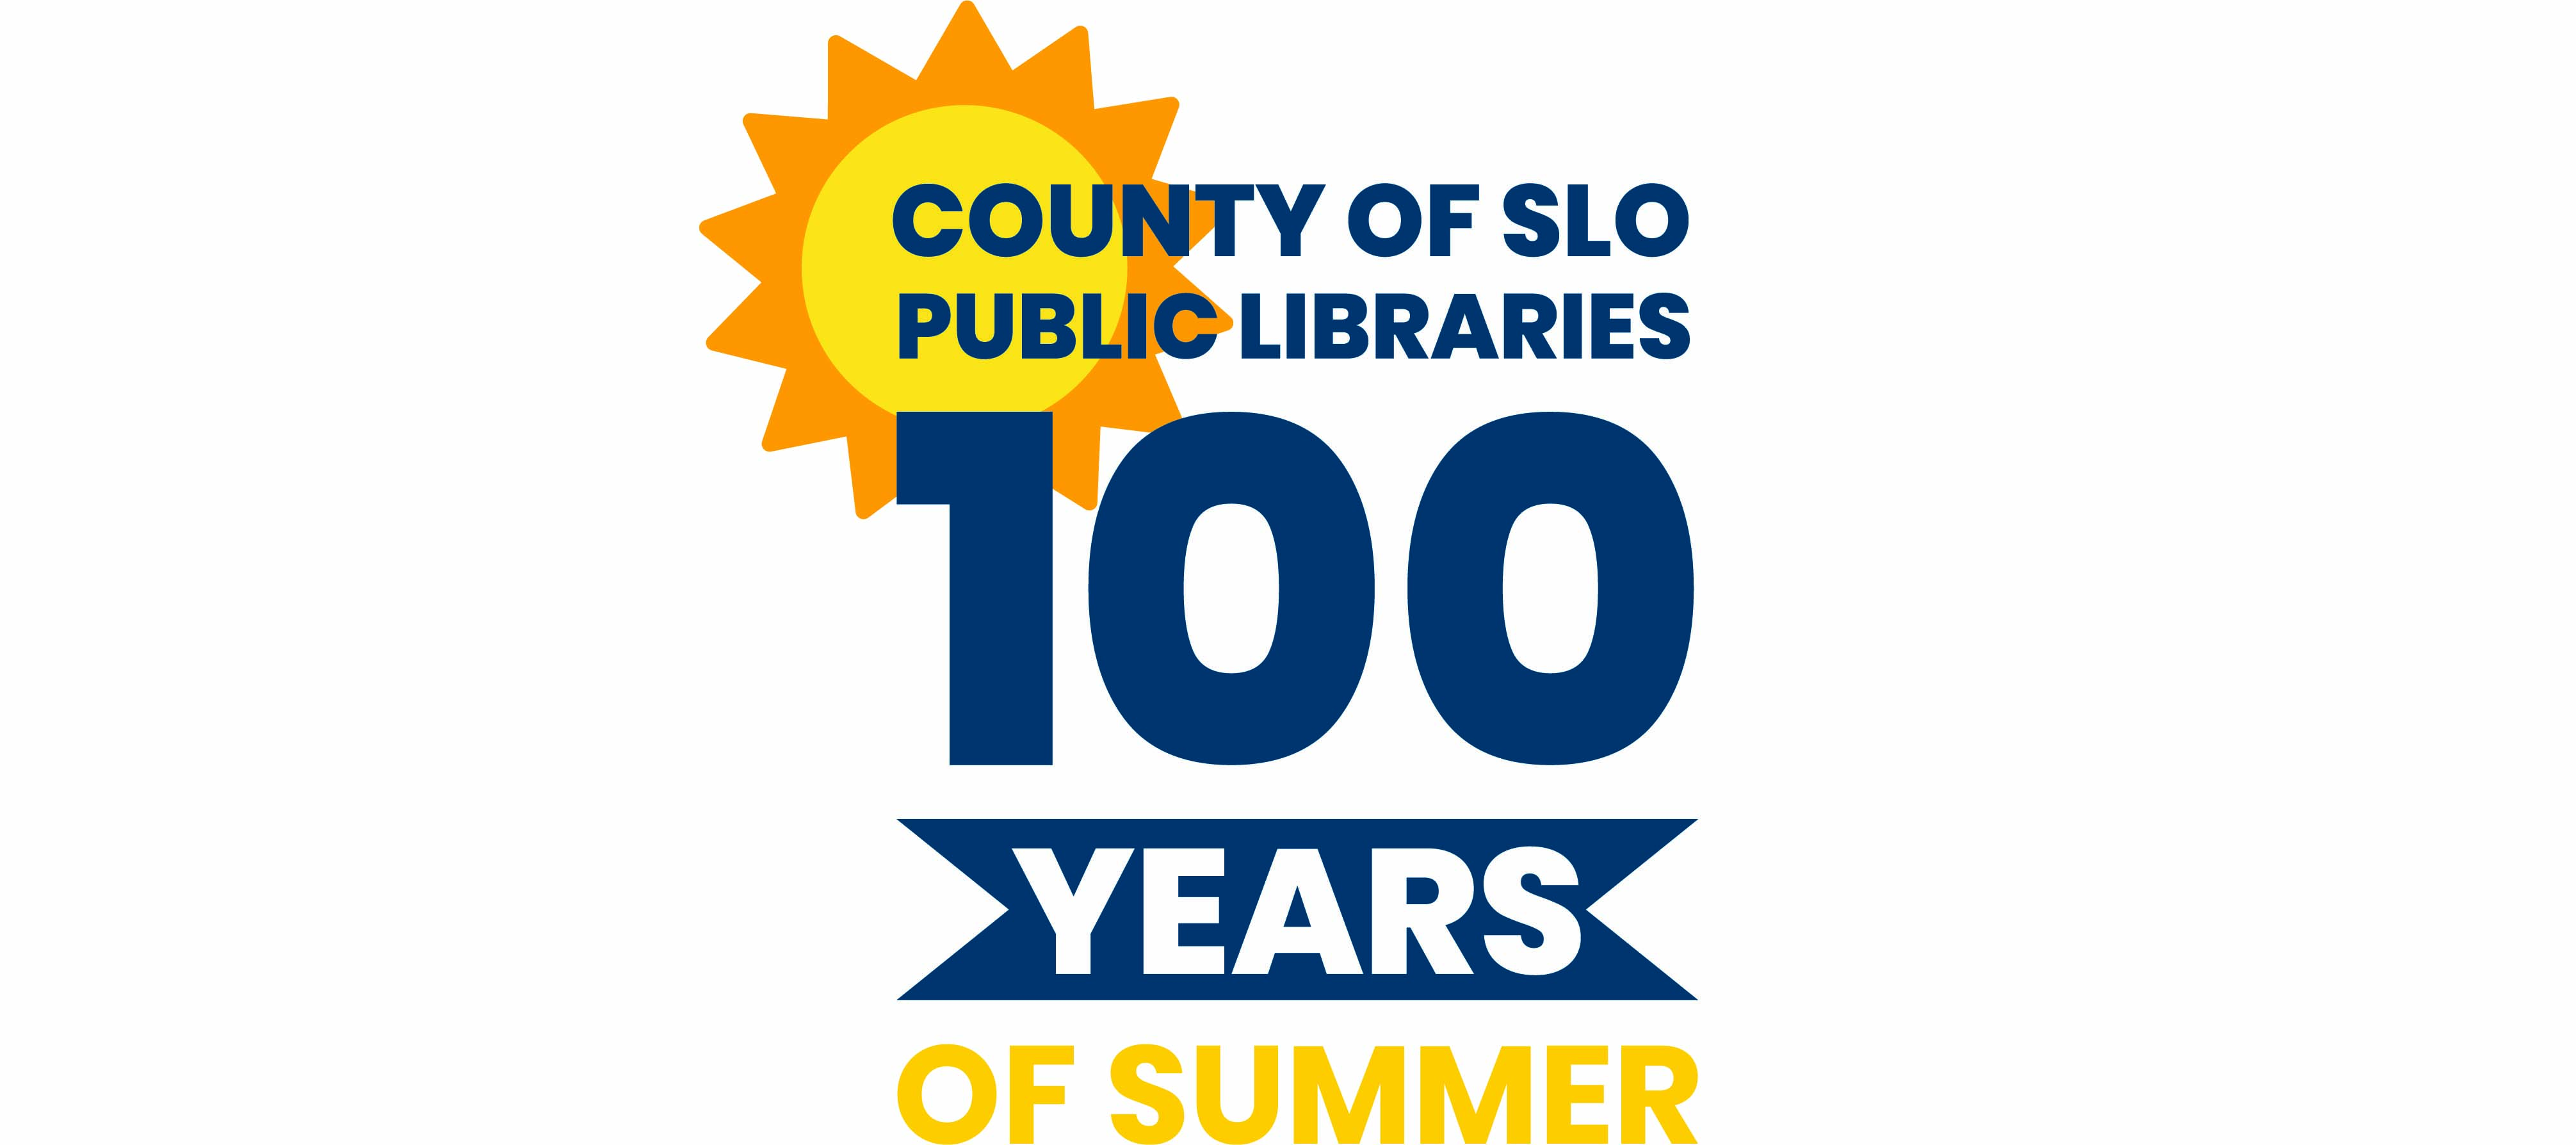 County of SLO Public Libraries: 100 Years of Summer